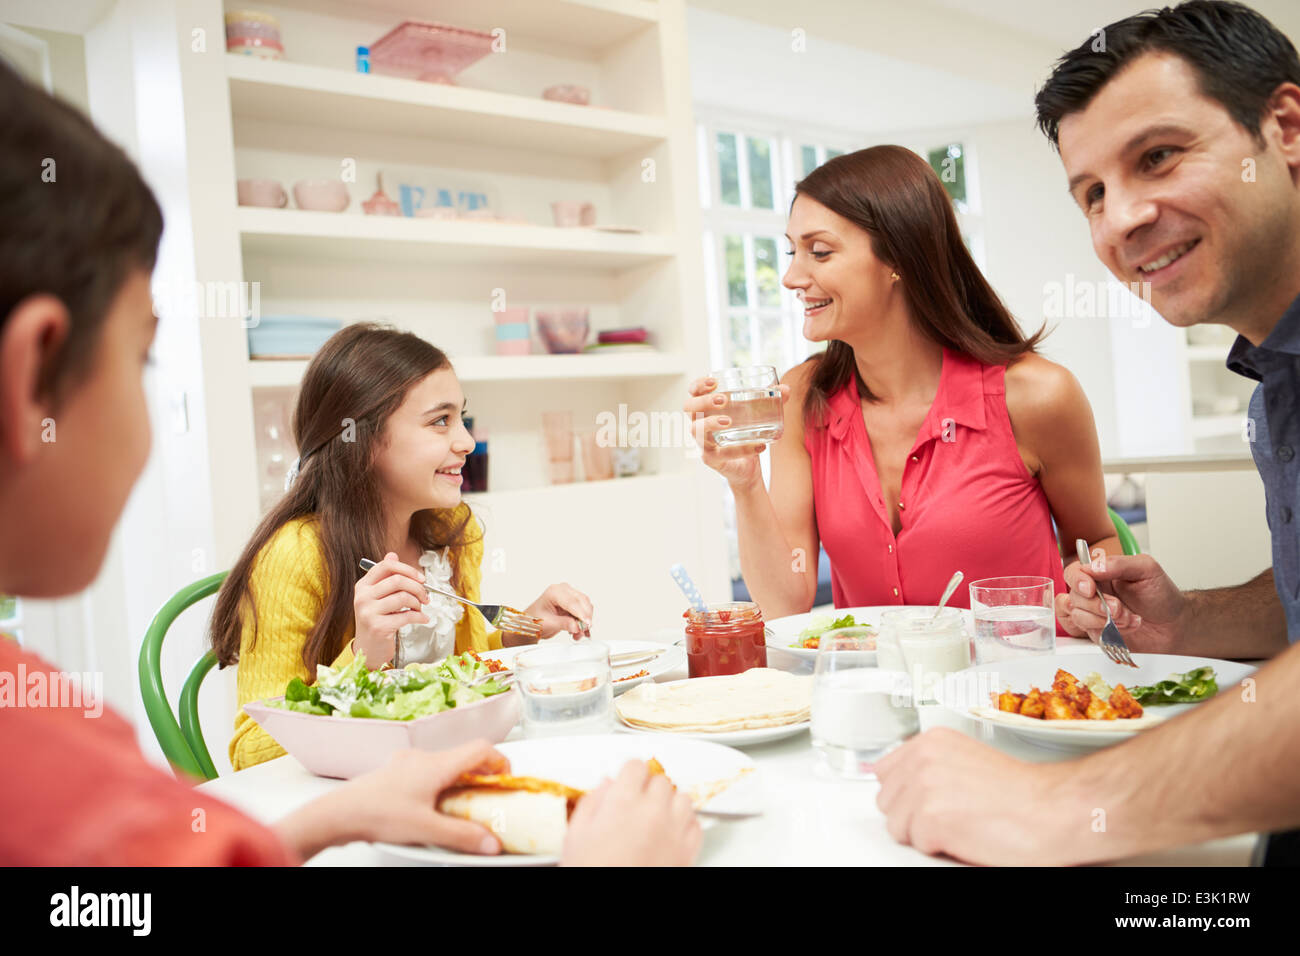 Hispanic Family Sitting At Table Eating Meal Together Banque D'Images